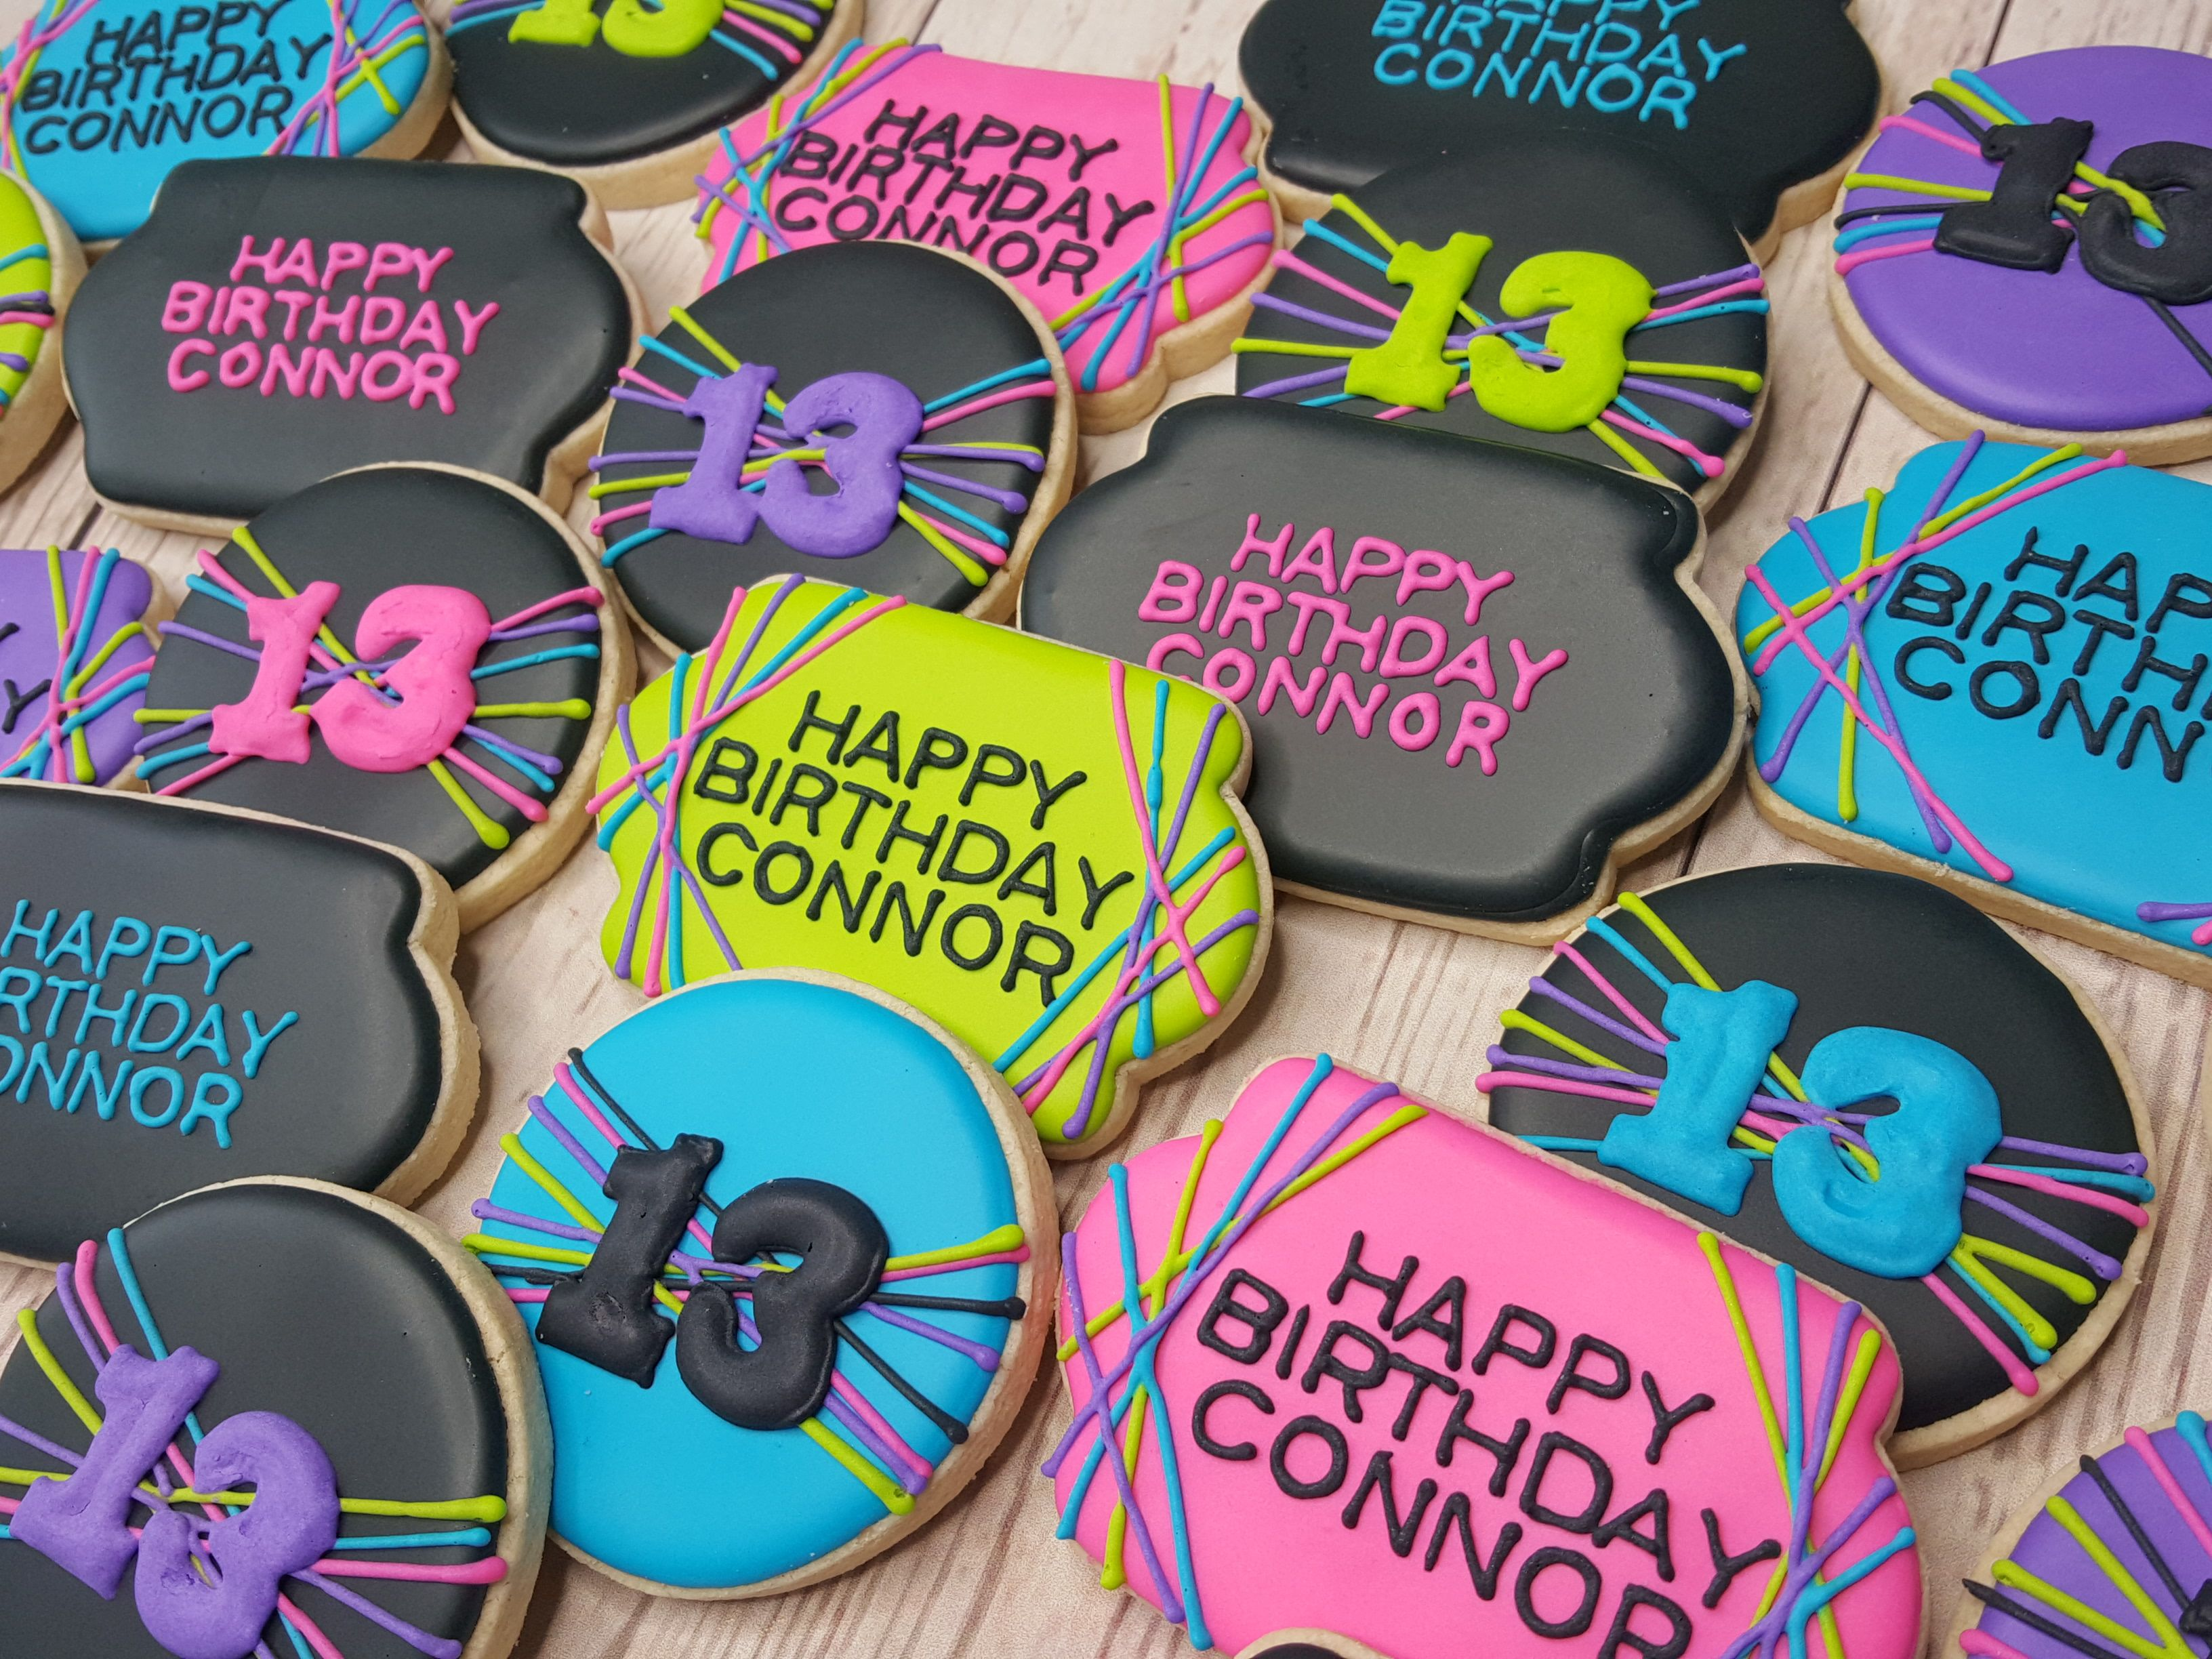 Pleasing Neon Themed Birthday Party Neon Themed Sugar Cookies Neon Personalised Birthday Cards Petedlily Jamesorg